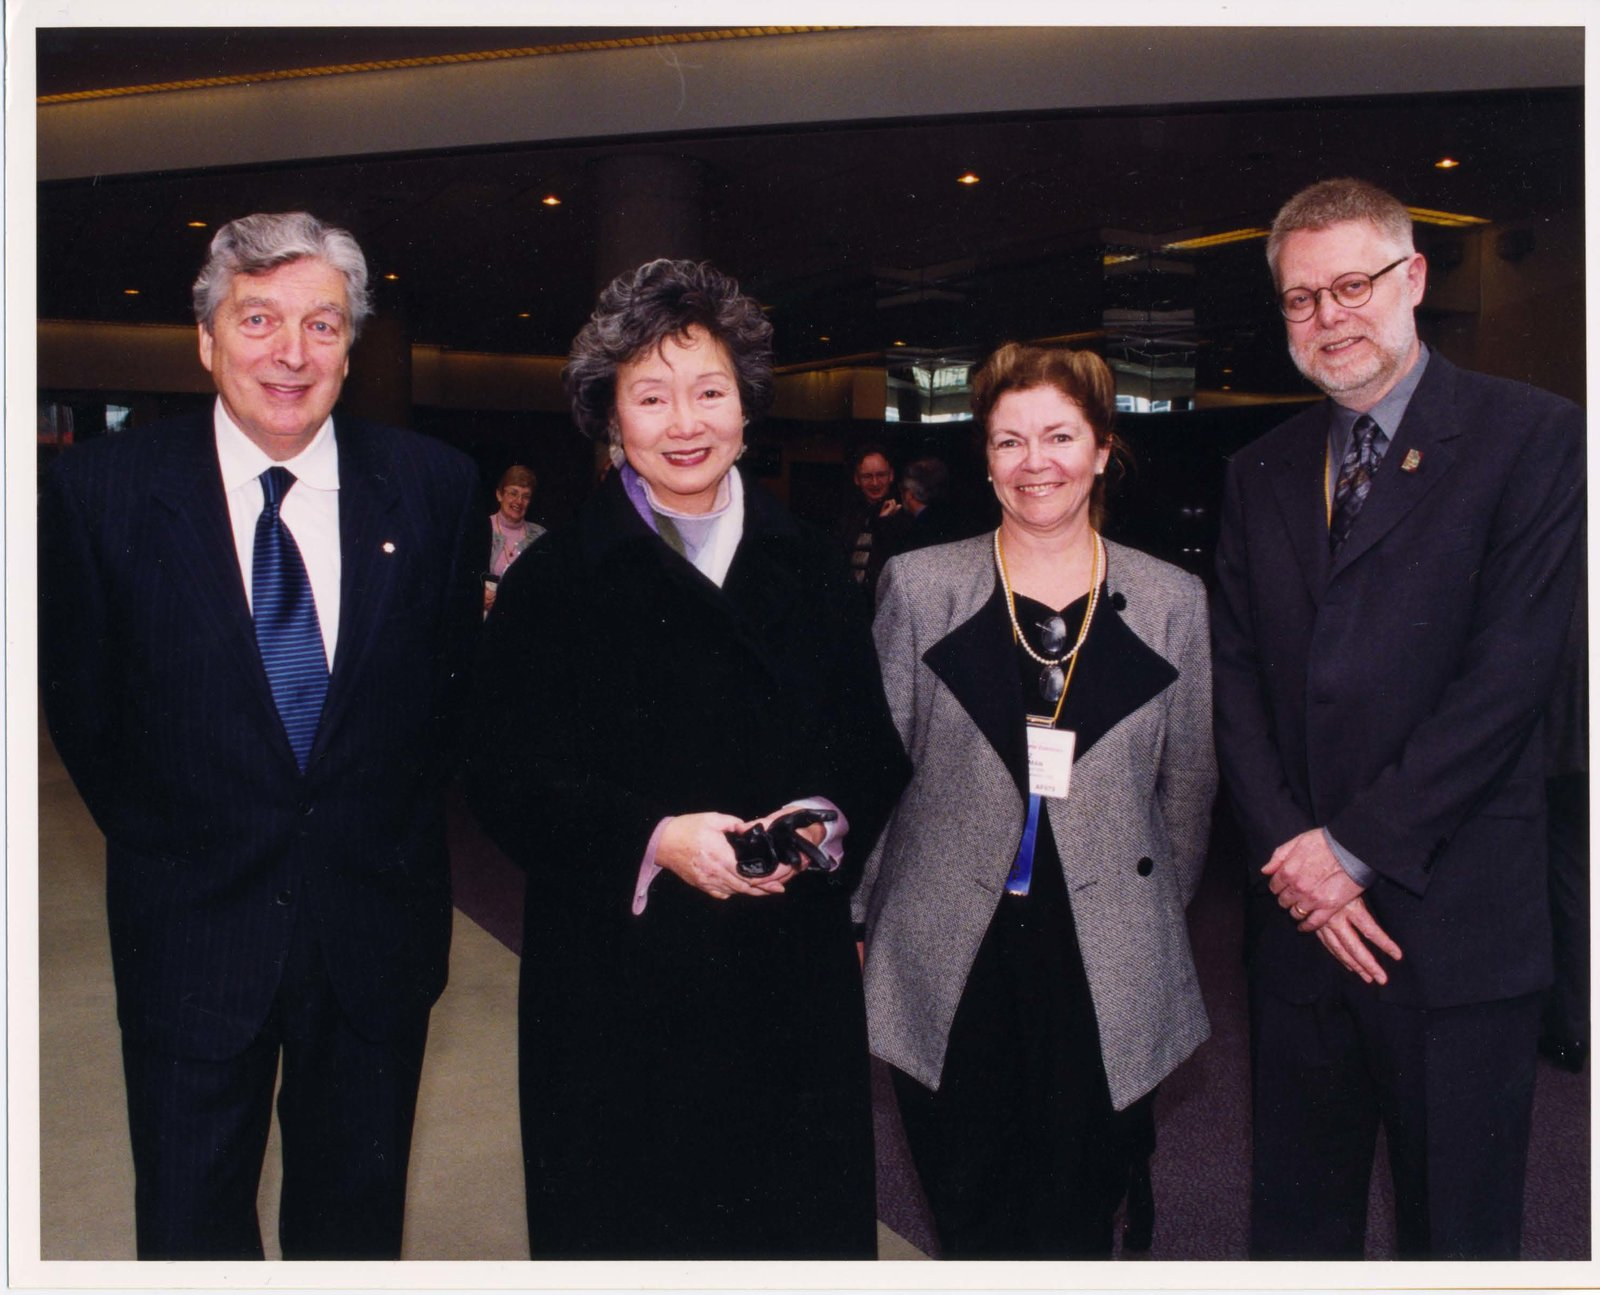 Roch Carrier, Adrienne Clarkson, Liz Hoffman, and Mike Ridley at Super Conference 2001